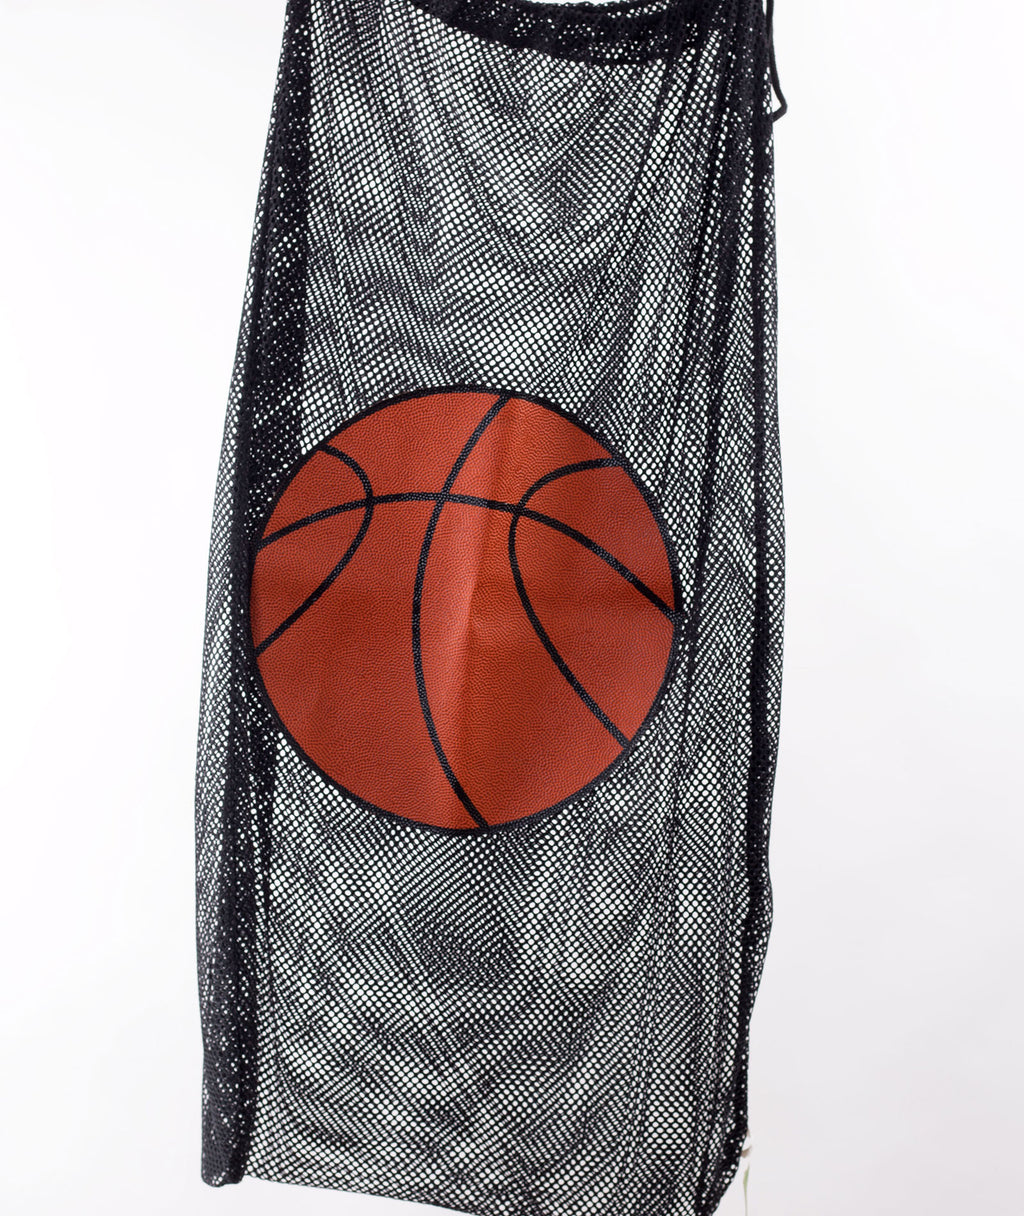 Confetti and Friends Basketball Laundry Bag - Frankie's on the Park